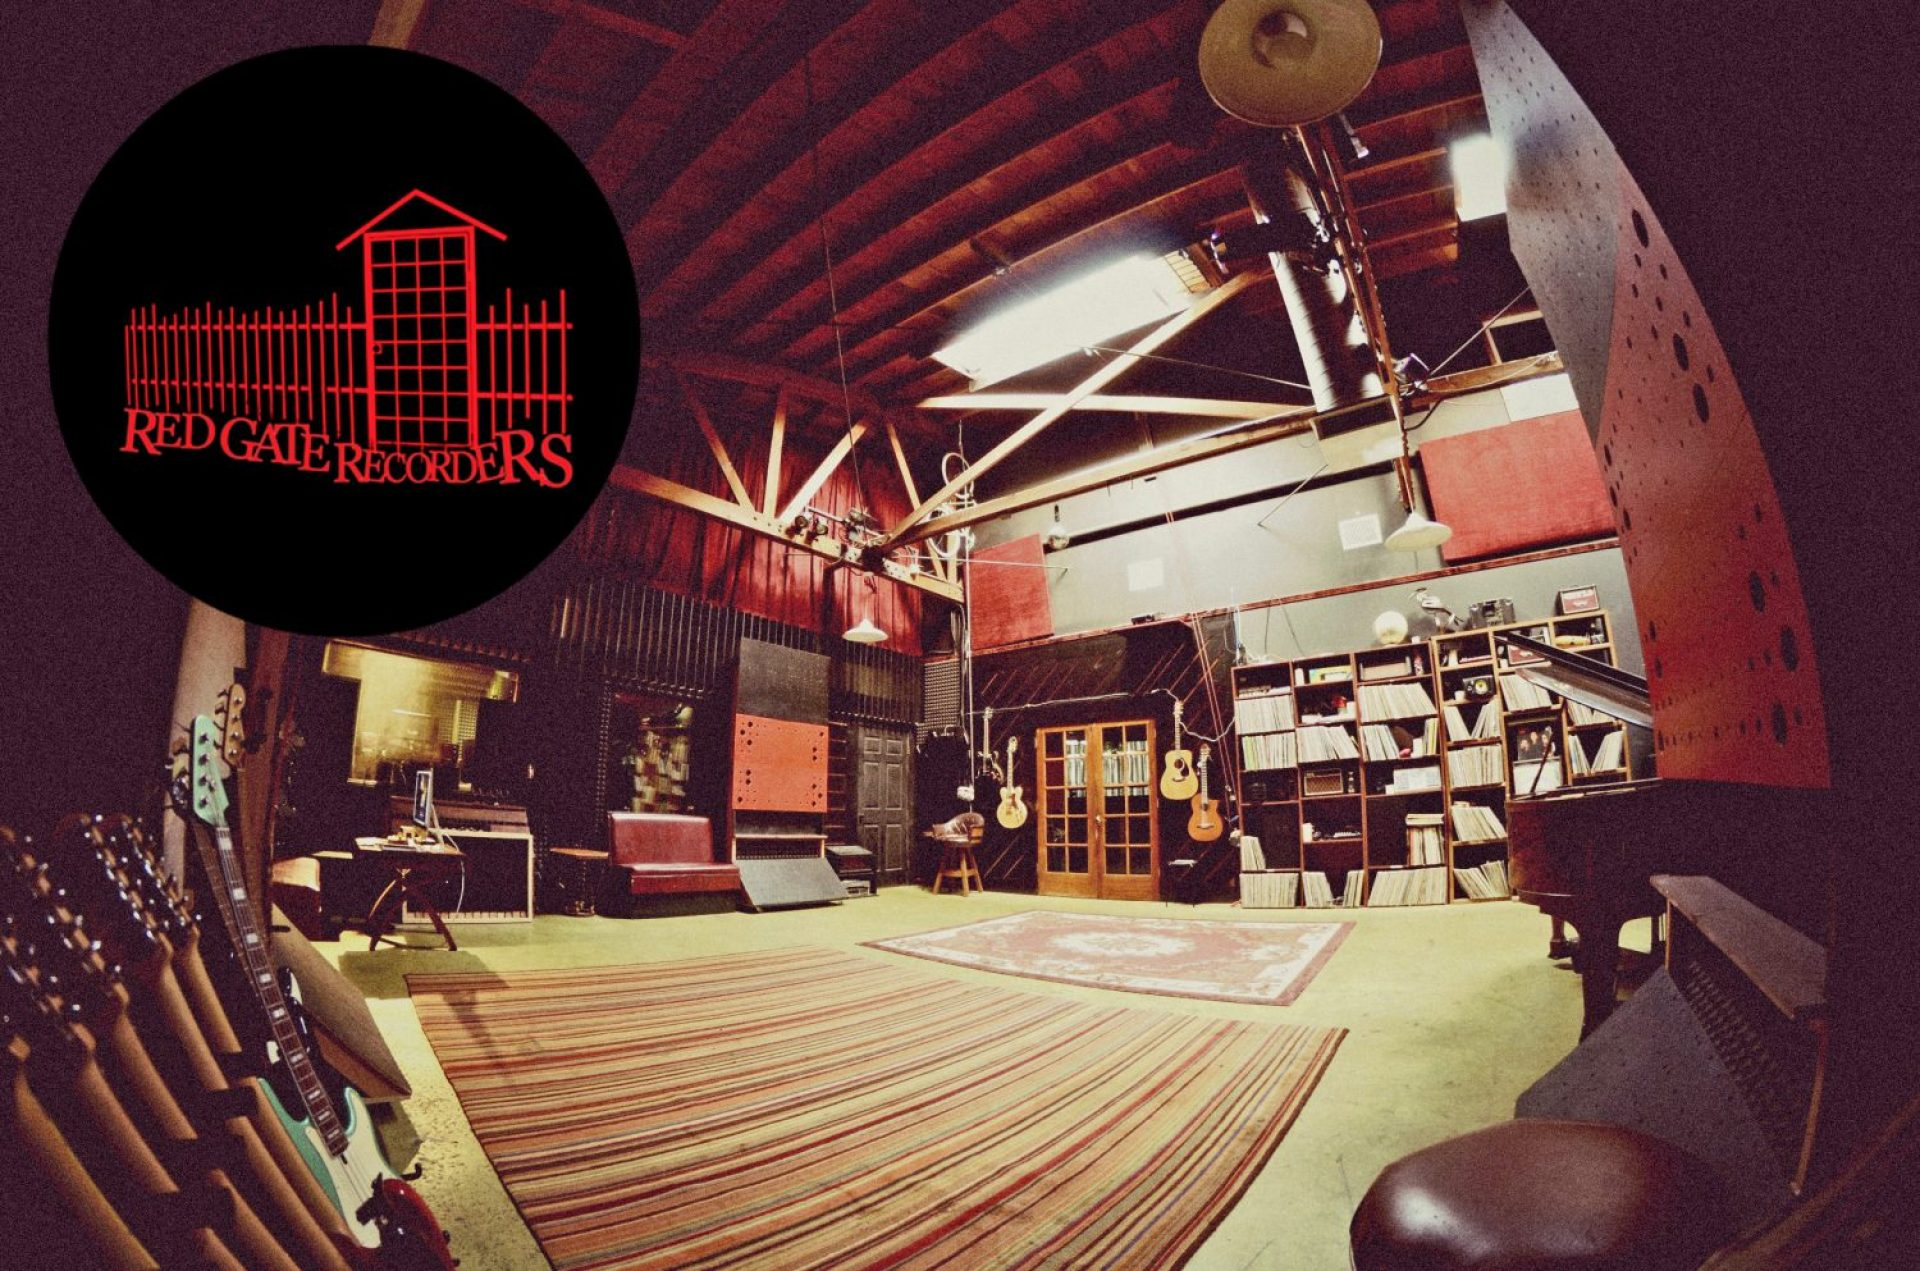 Recording Studio, Rehearsal Space, and Live Events Venue in Los Angeles, California